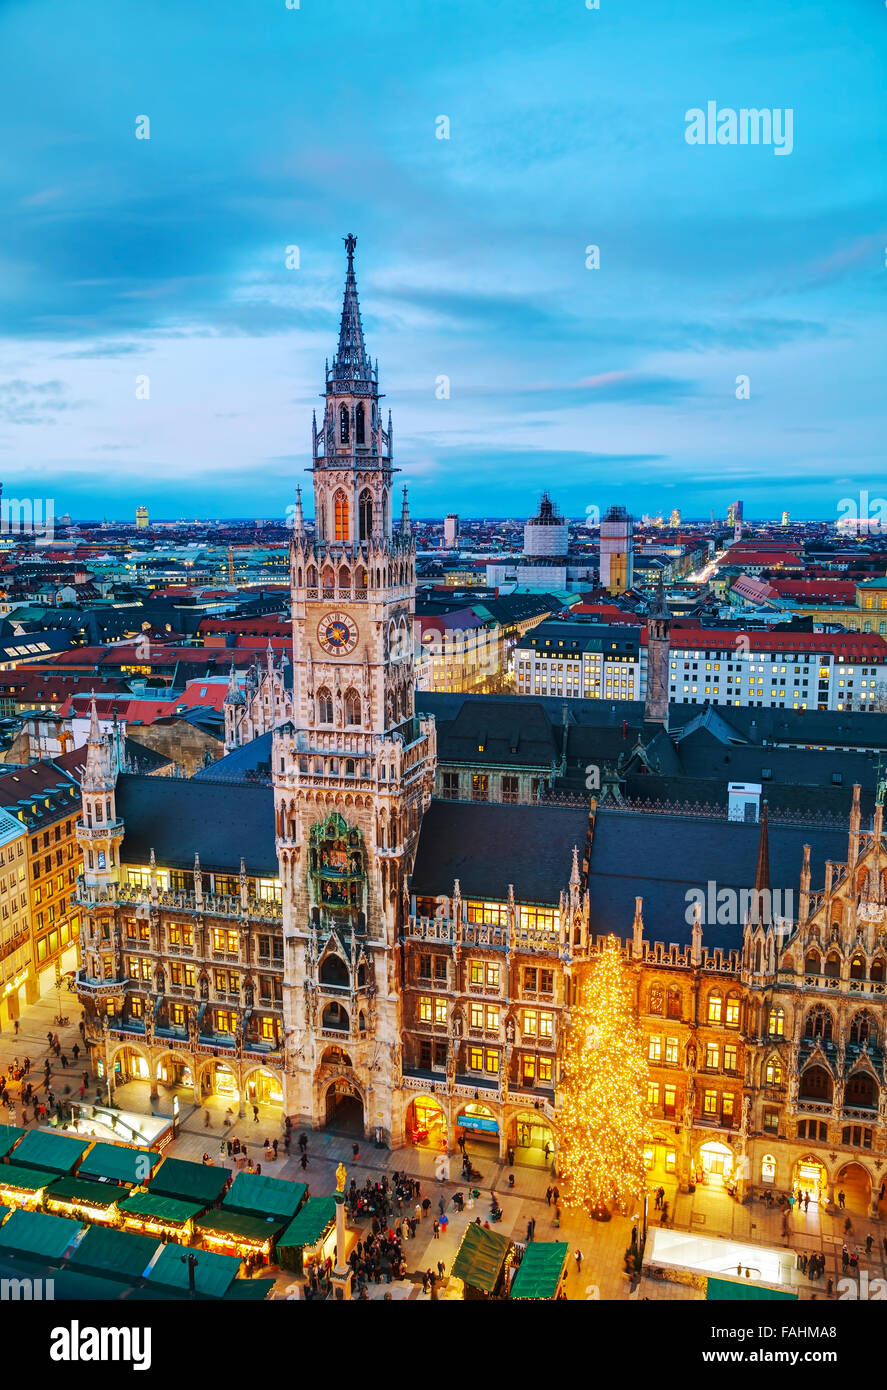 MUNICH - NOVEMBER 30: Aerial view of Marienplatz on November 30, 2015 in Munich. It's the 3rd largest city in - Stock Image